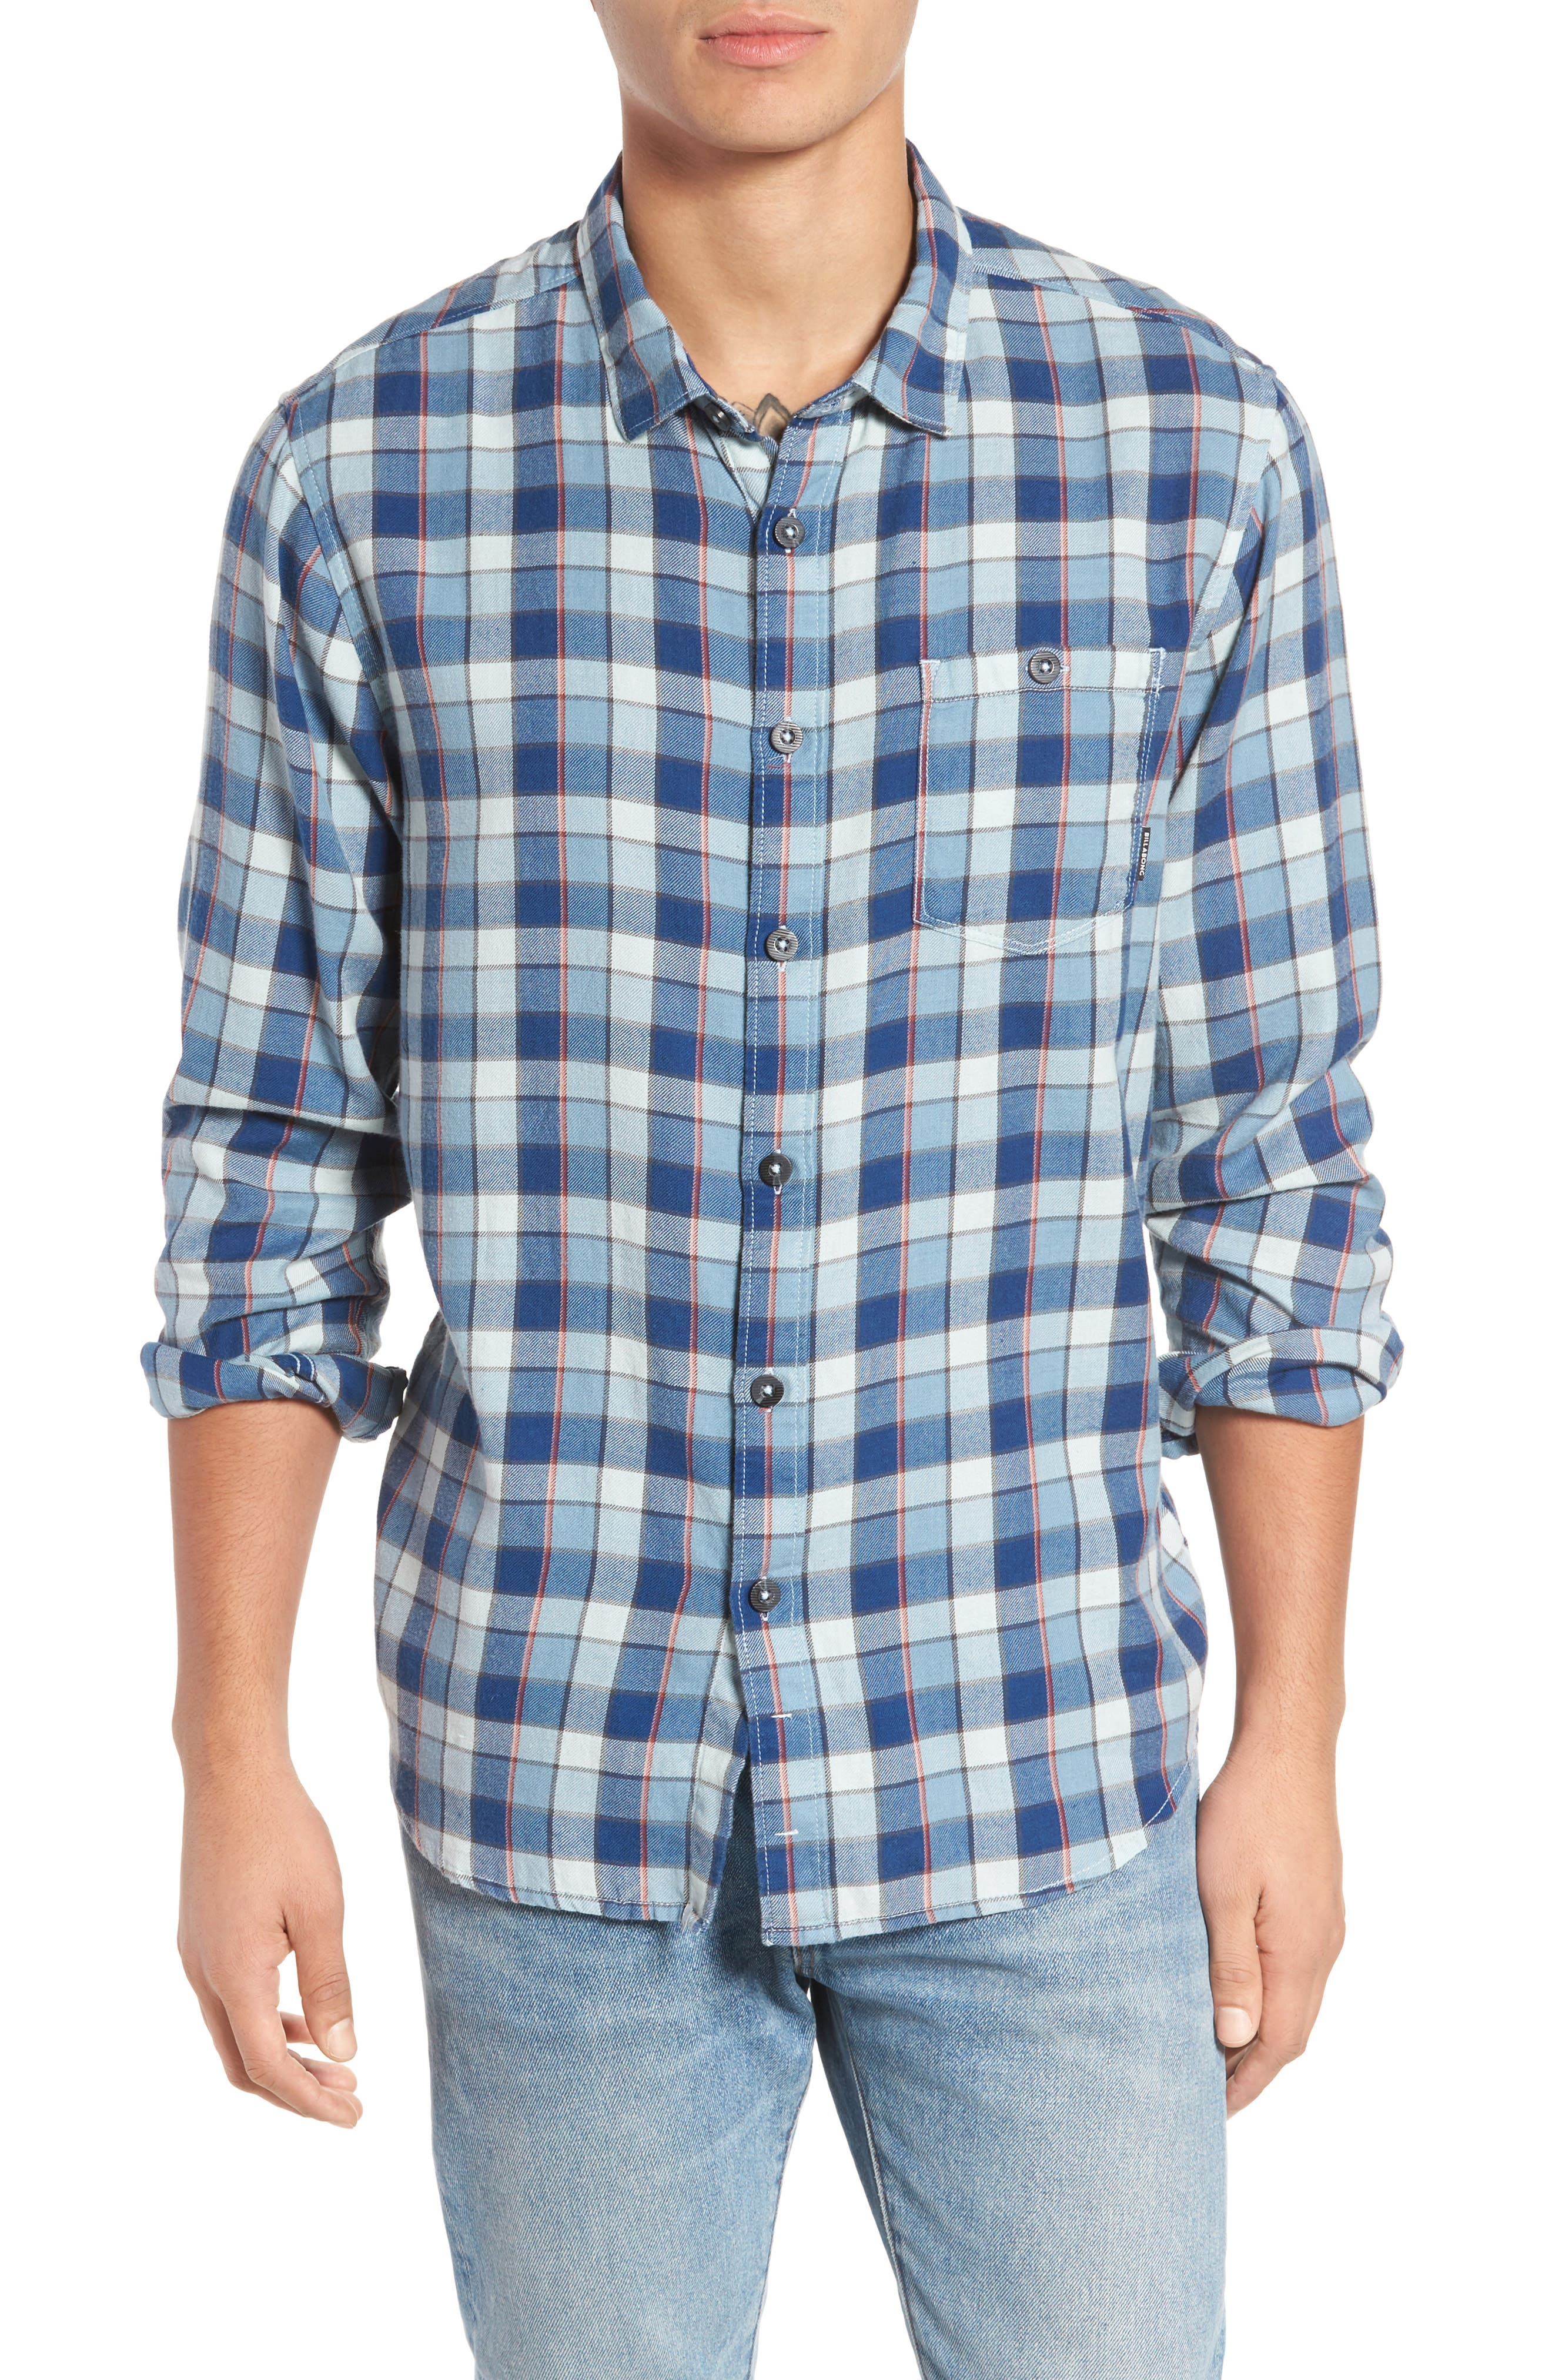 Bilabong Freemont Flannel Shirt,                         Main,                         color, 428